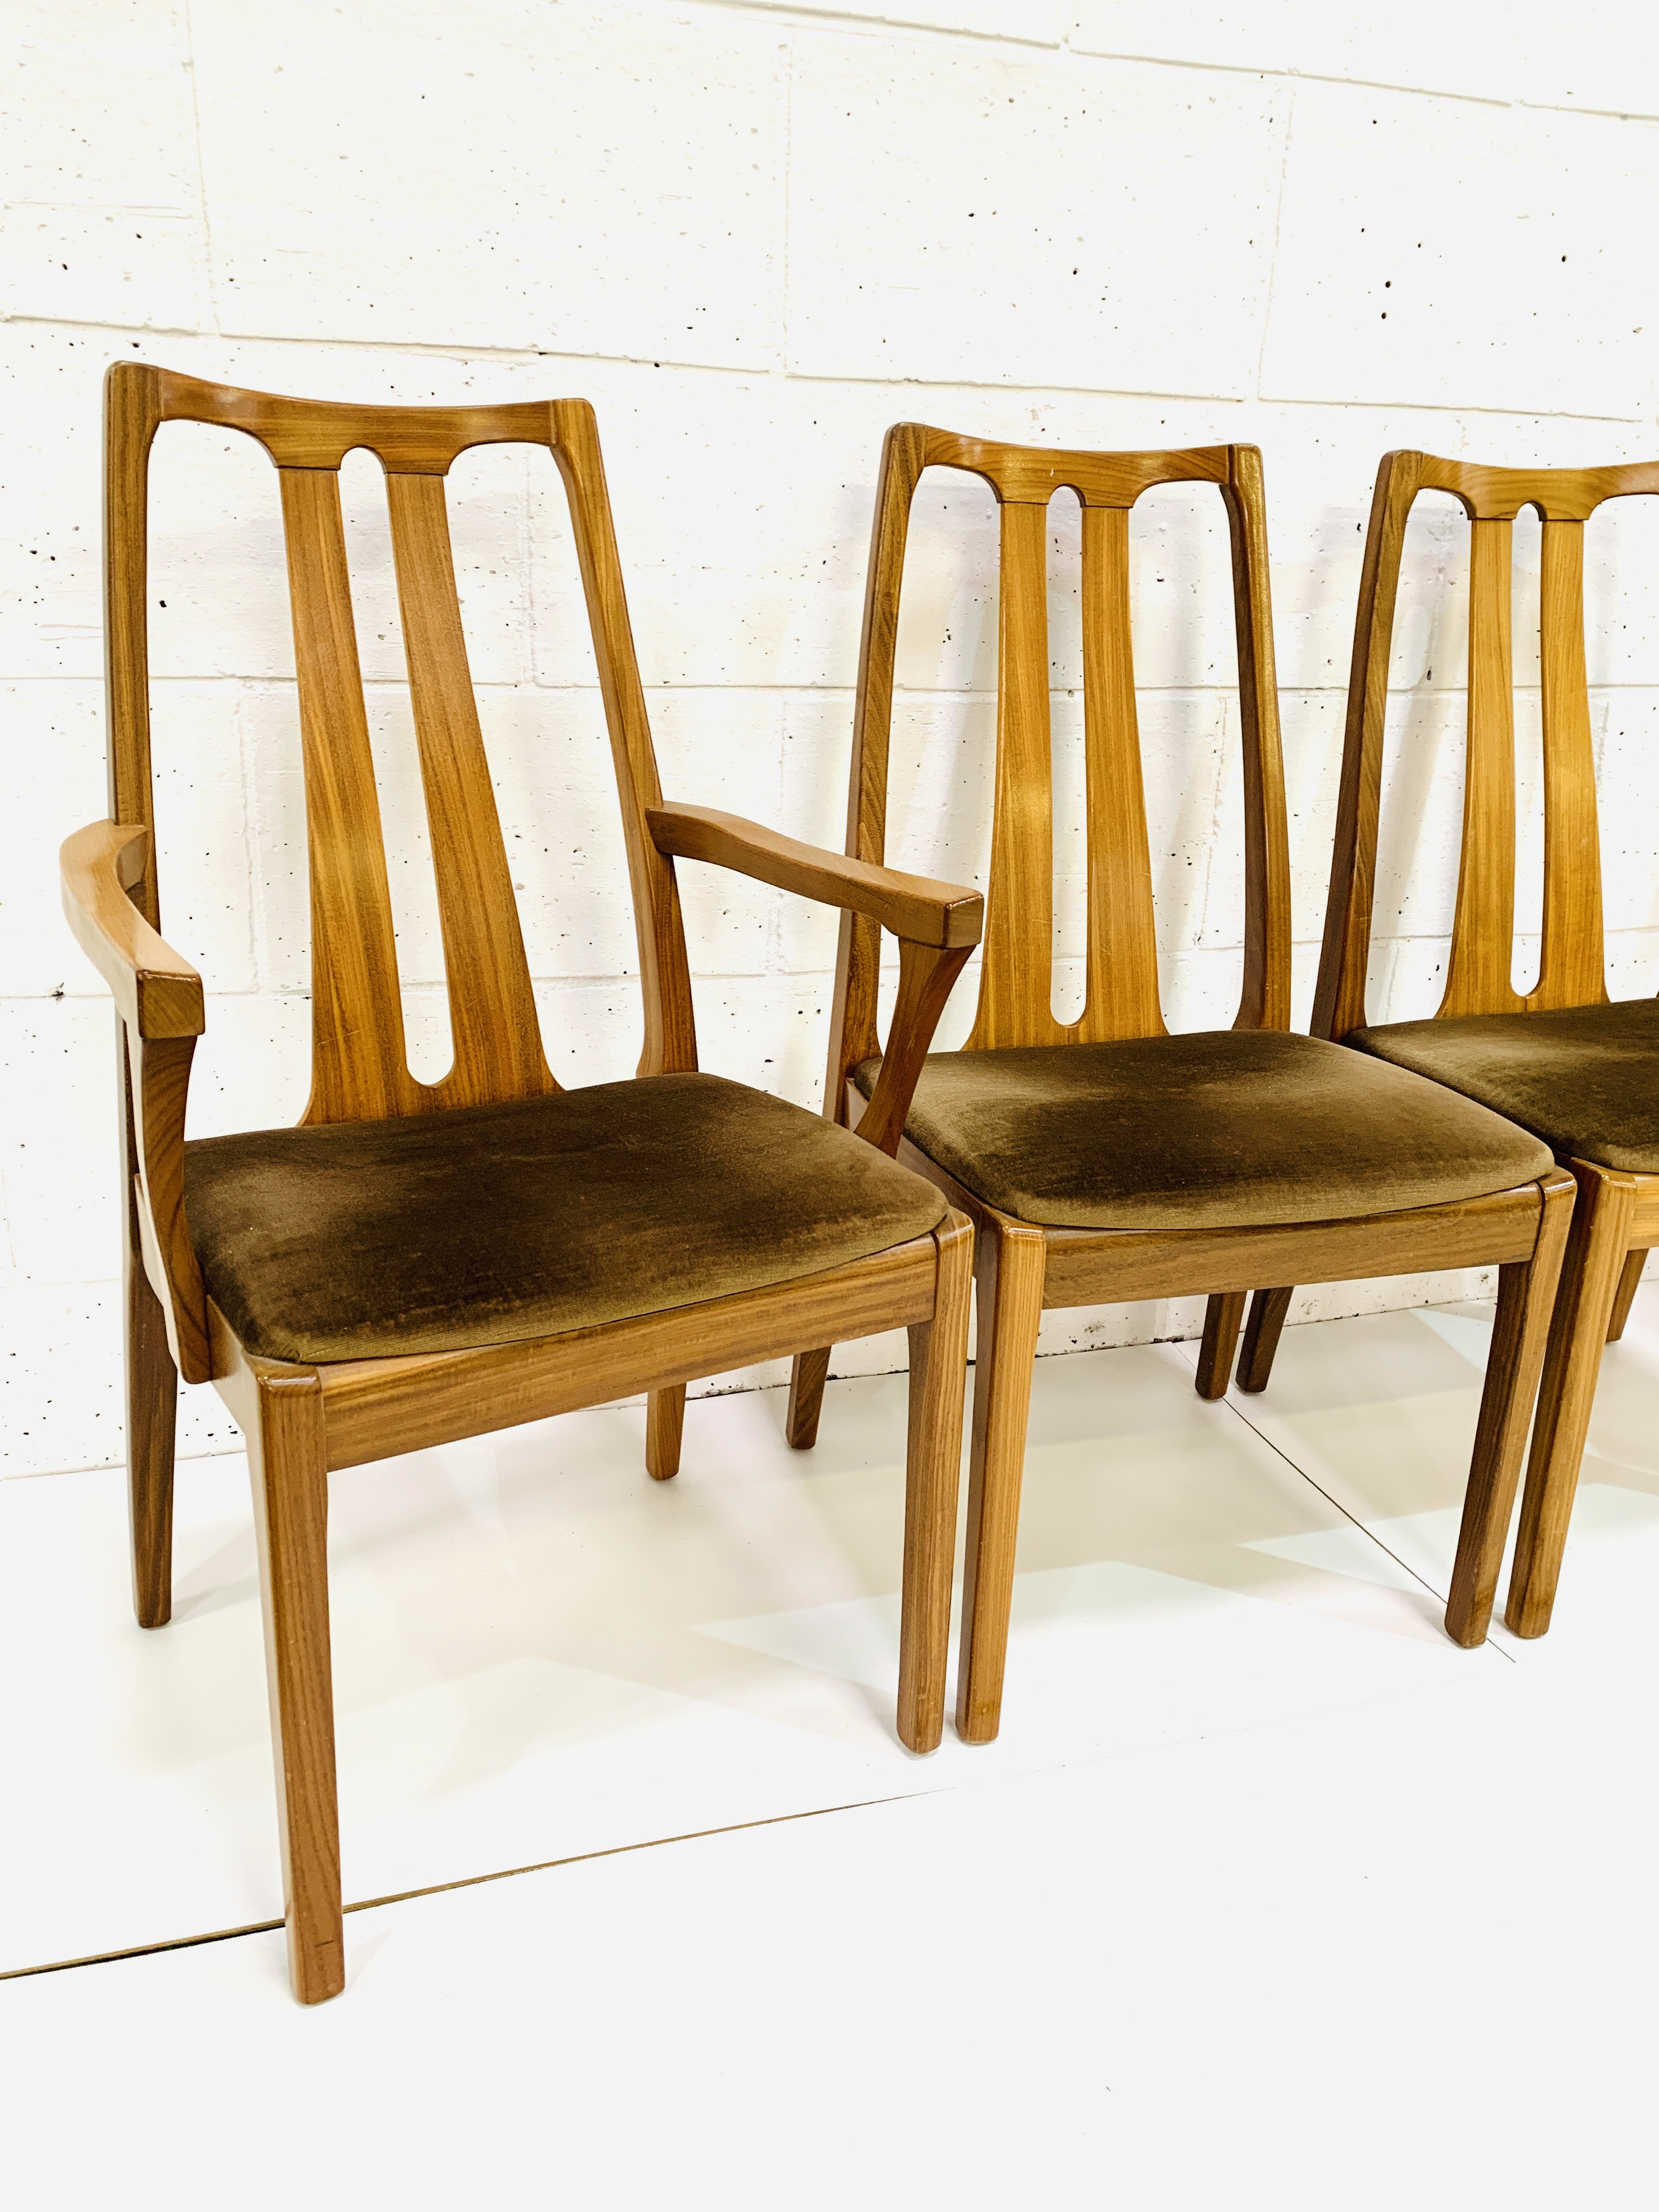 Group of four Nathan Furniture chairs - Image 5 of 6